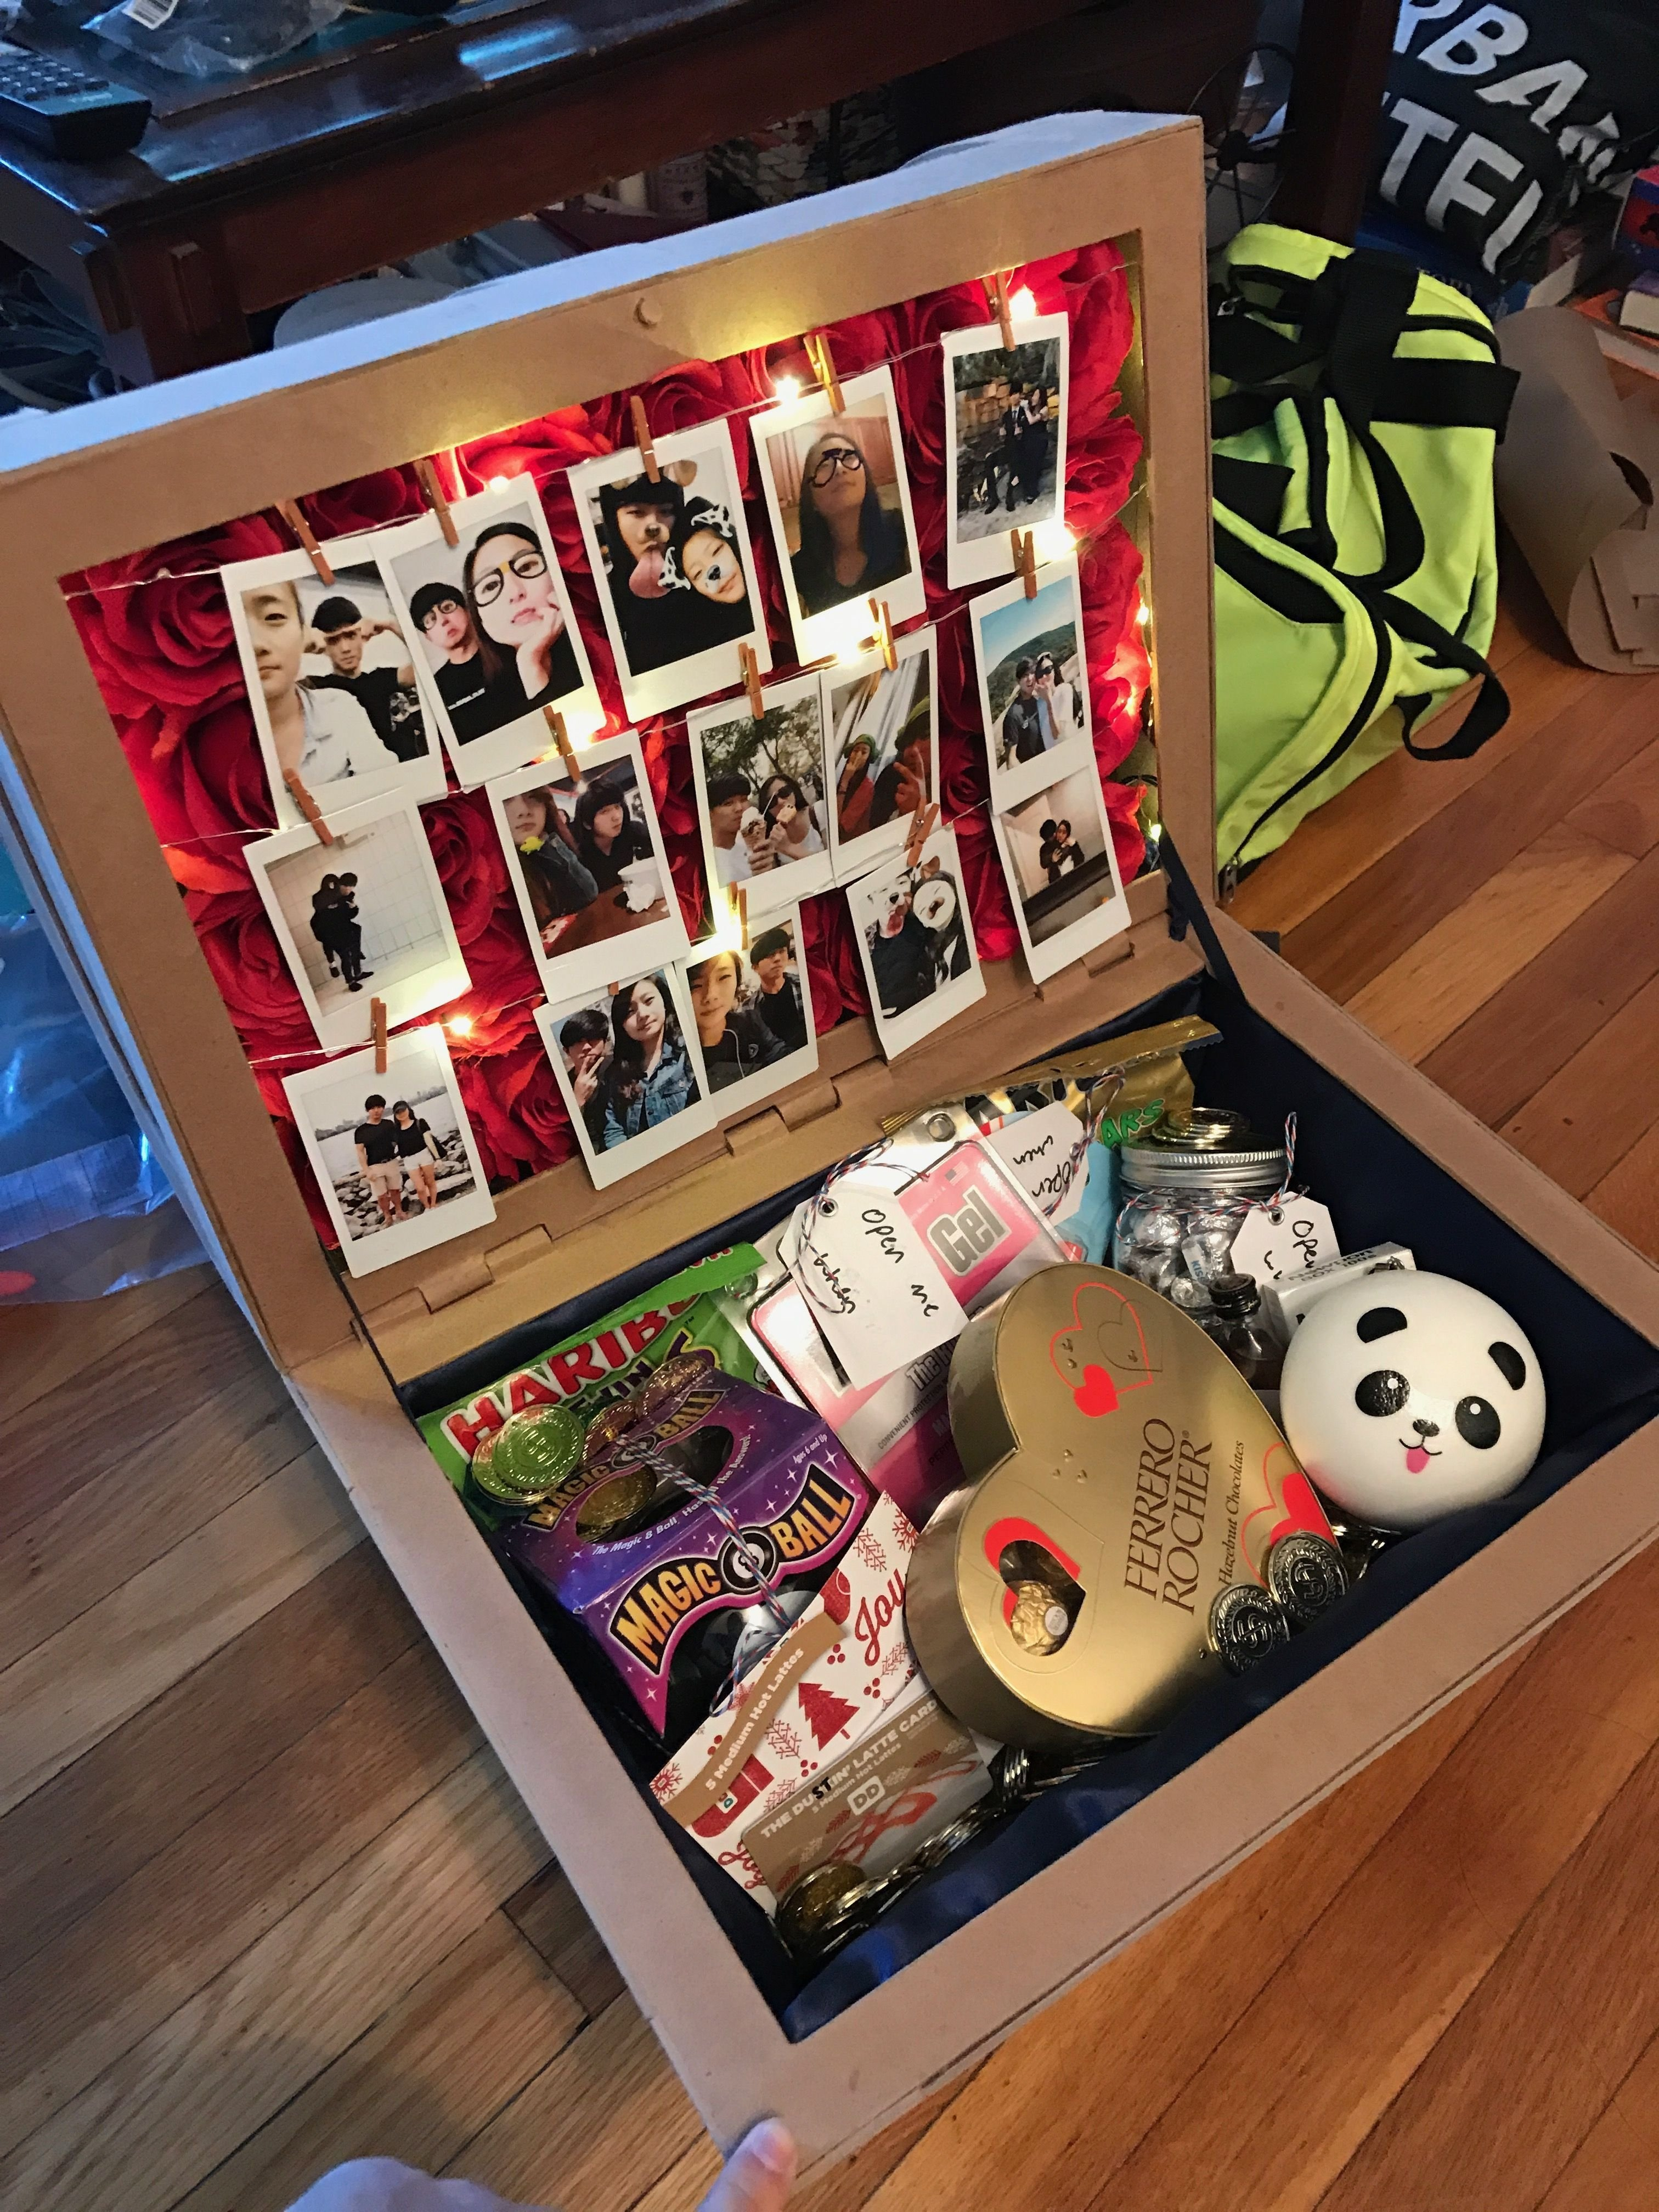 10 Lovable Christmas Gifts Ideas For Girlfriend i made a treasure chest out of paper for my girlfriend 18 2020